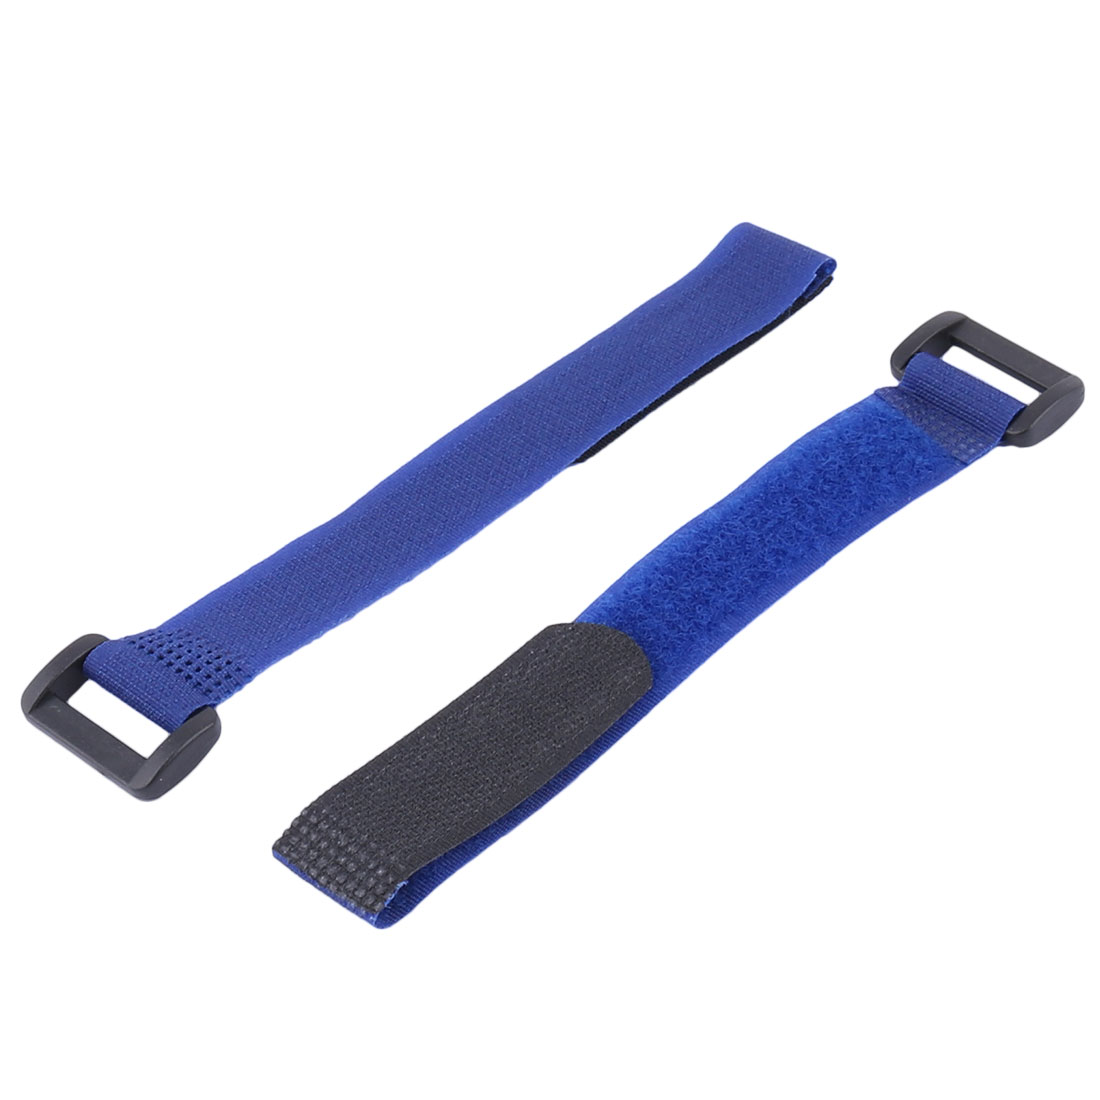 Nylon Sticky Hook Loop Adjustable Cable Ties Self Adhesive Fastener Blue 2pcs